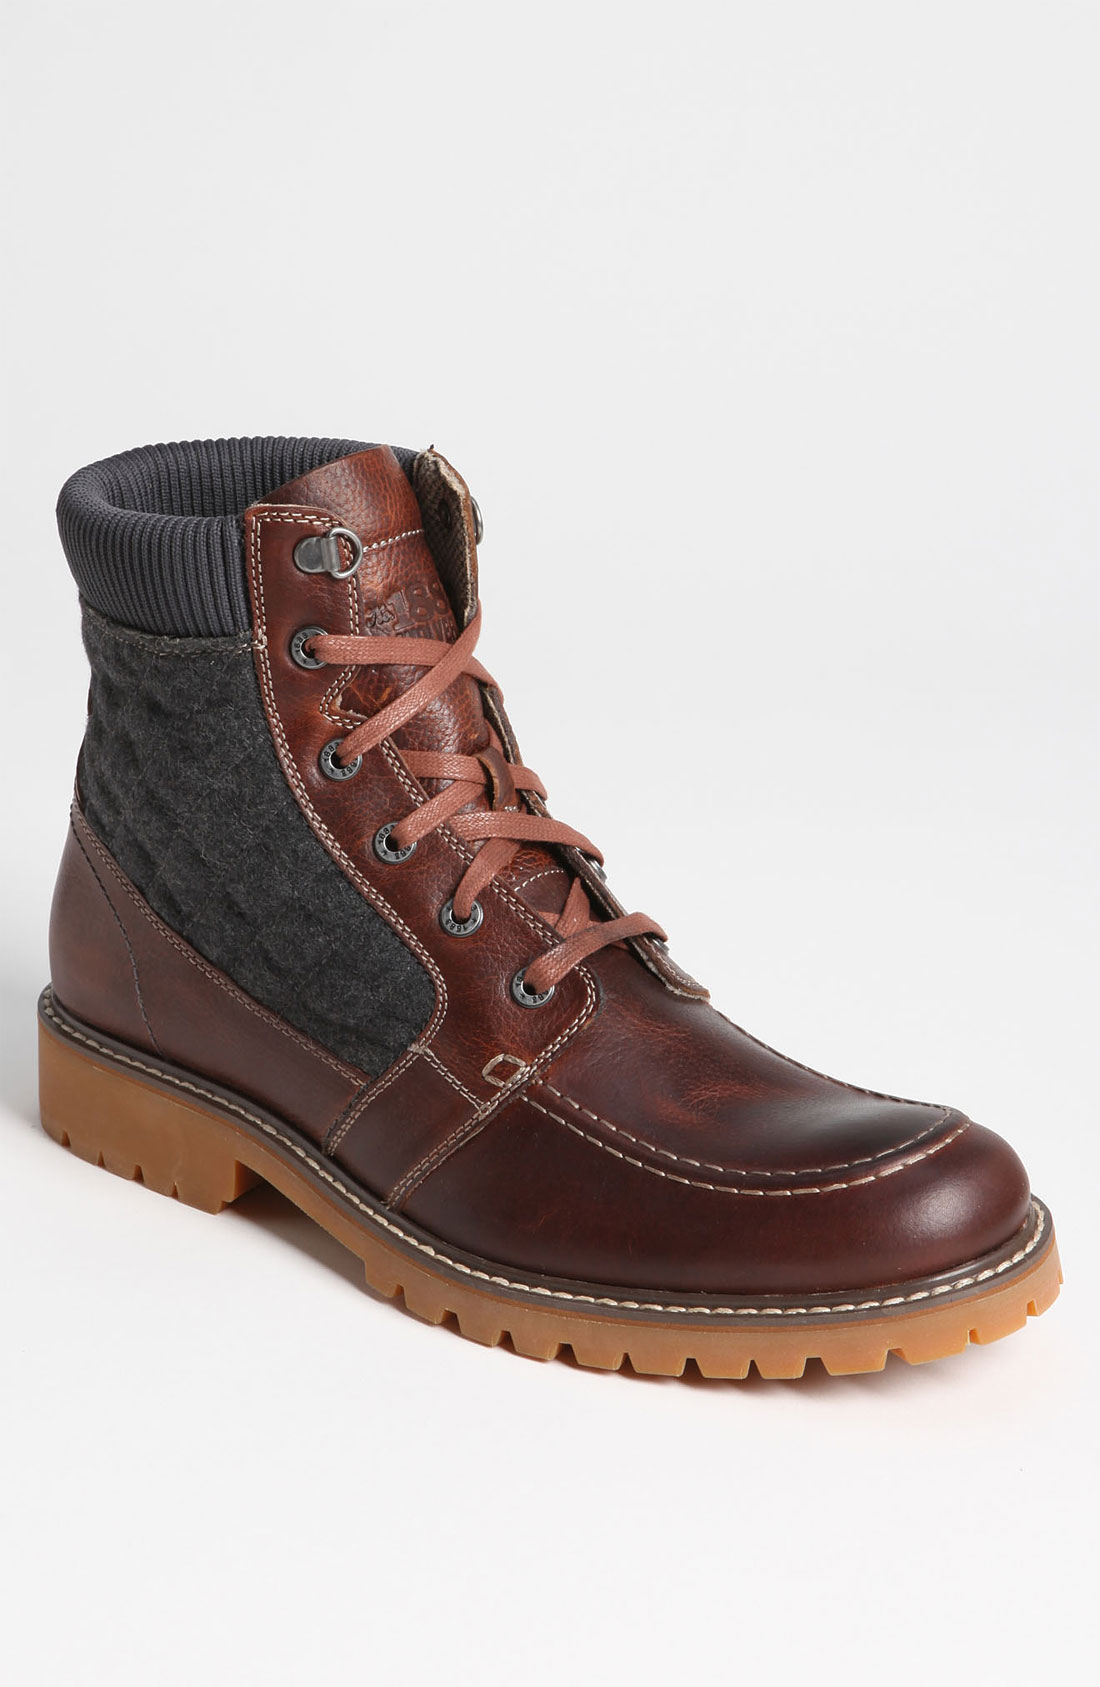 Wolverine Ricardo Hiking Boot In Brown For Men Save 30